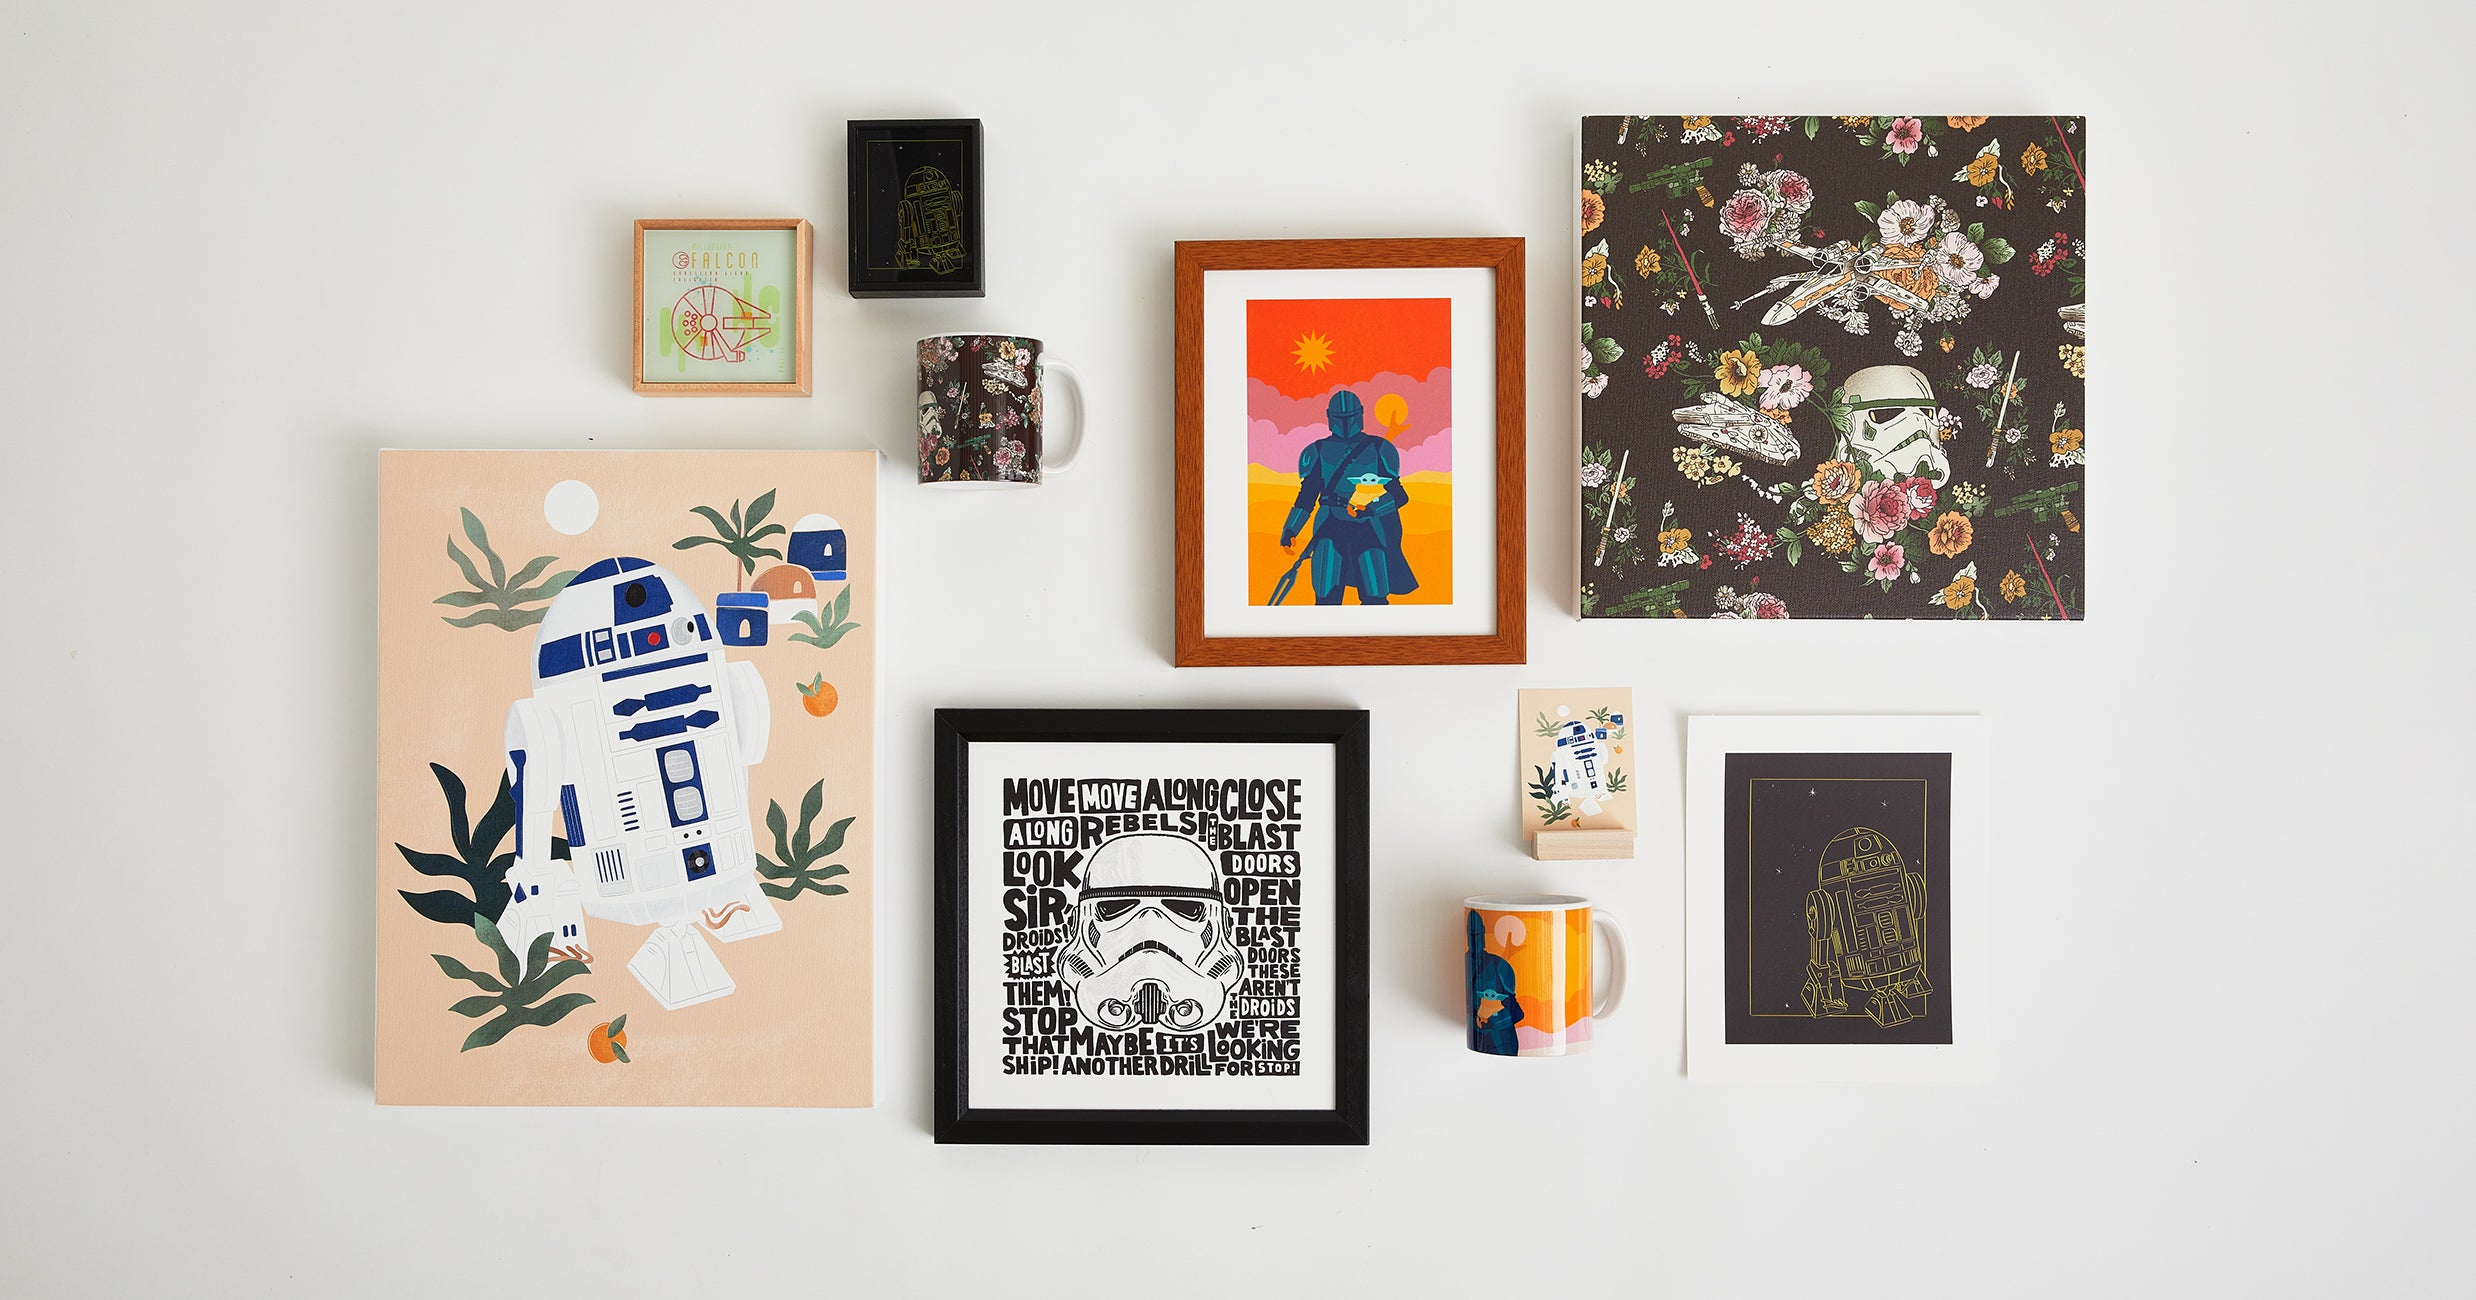 www.refinery29.com: The Star Wars Art Your Gallery Wall Has Been Waiting For